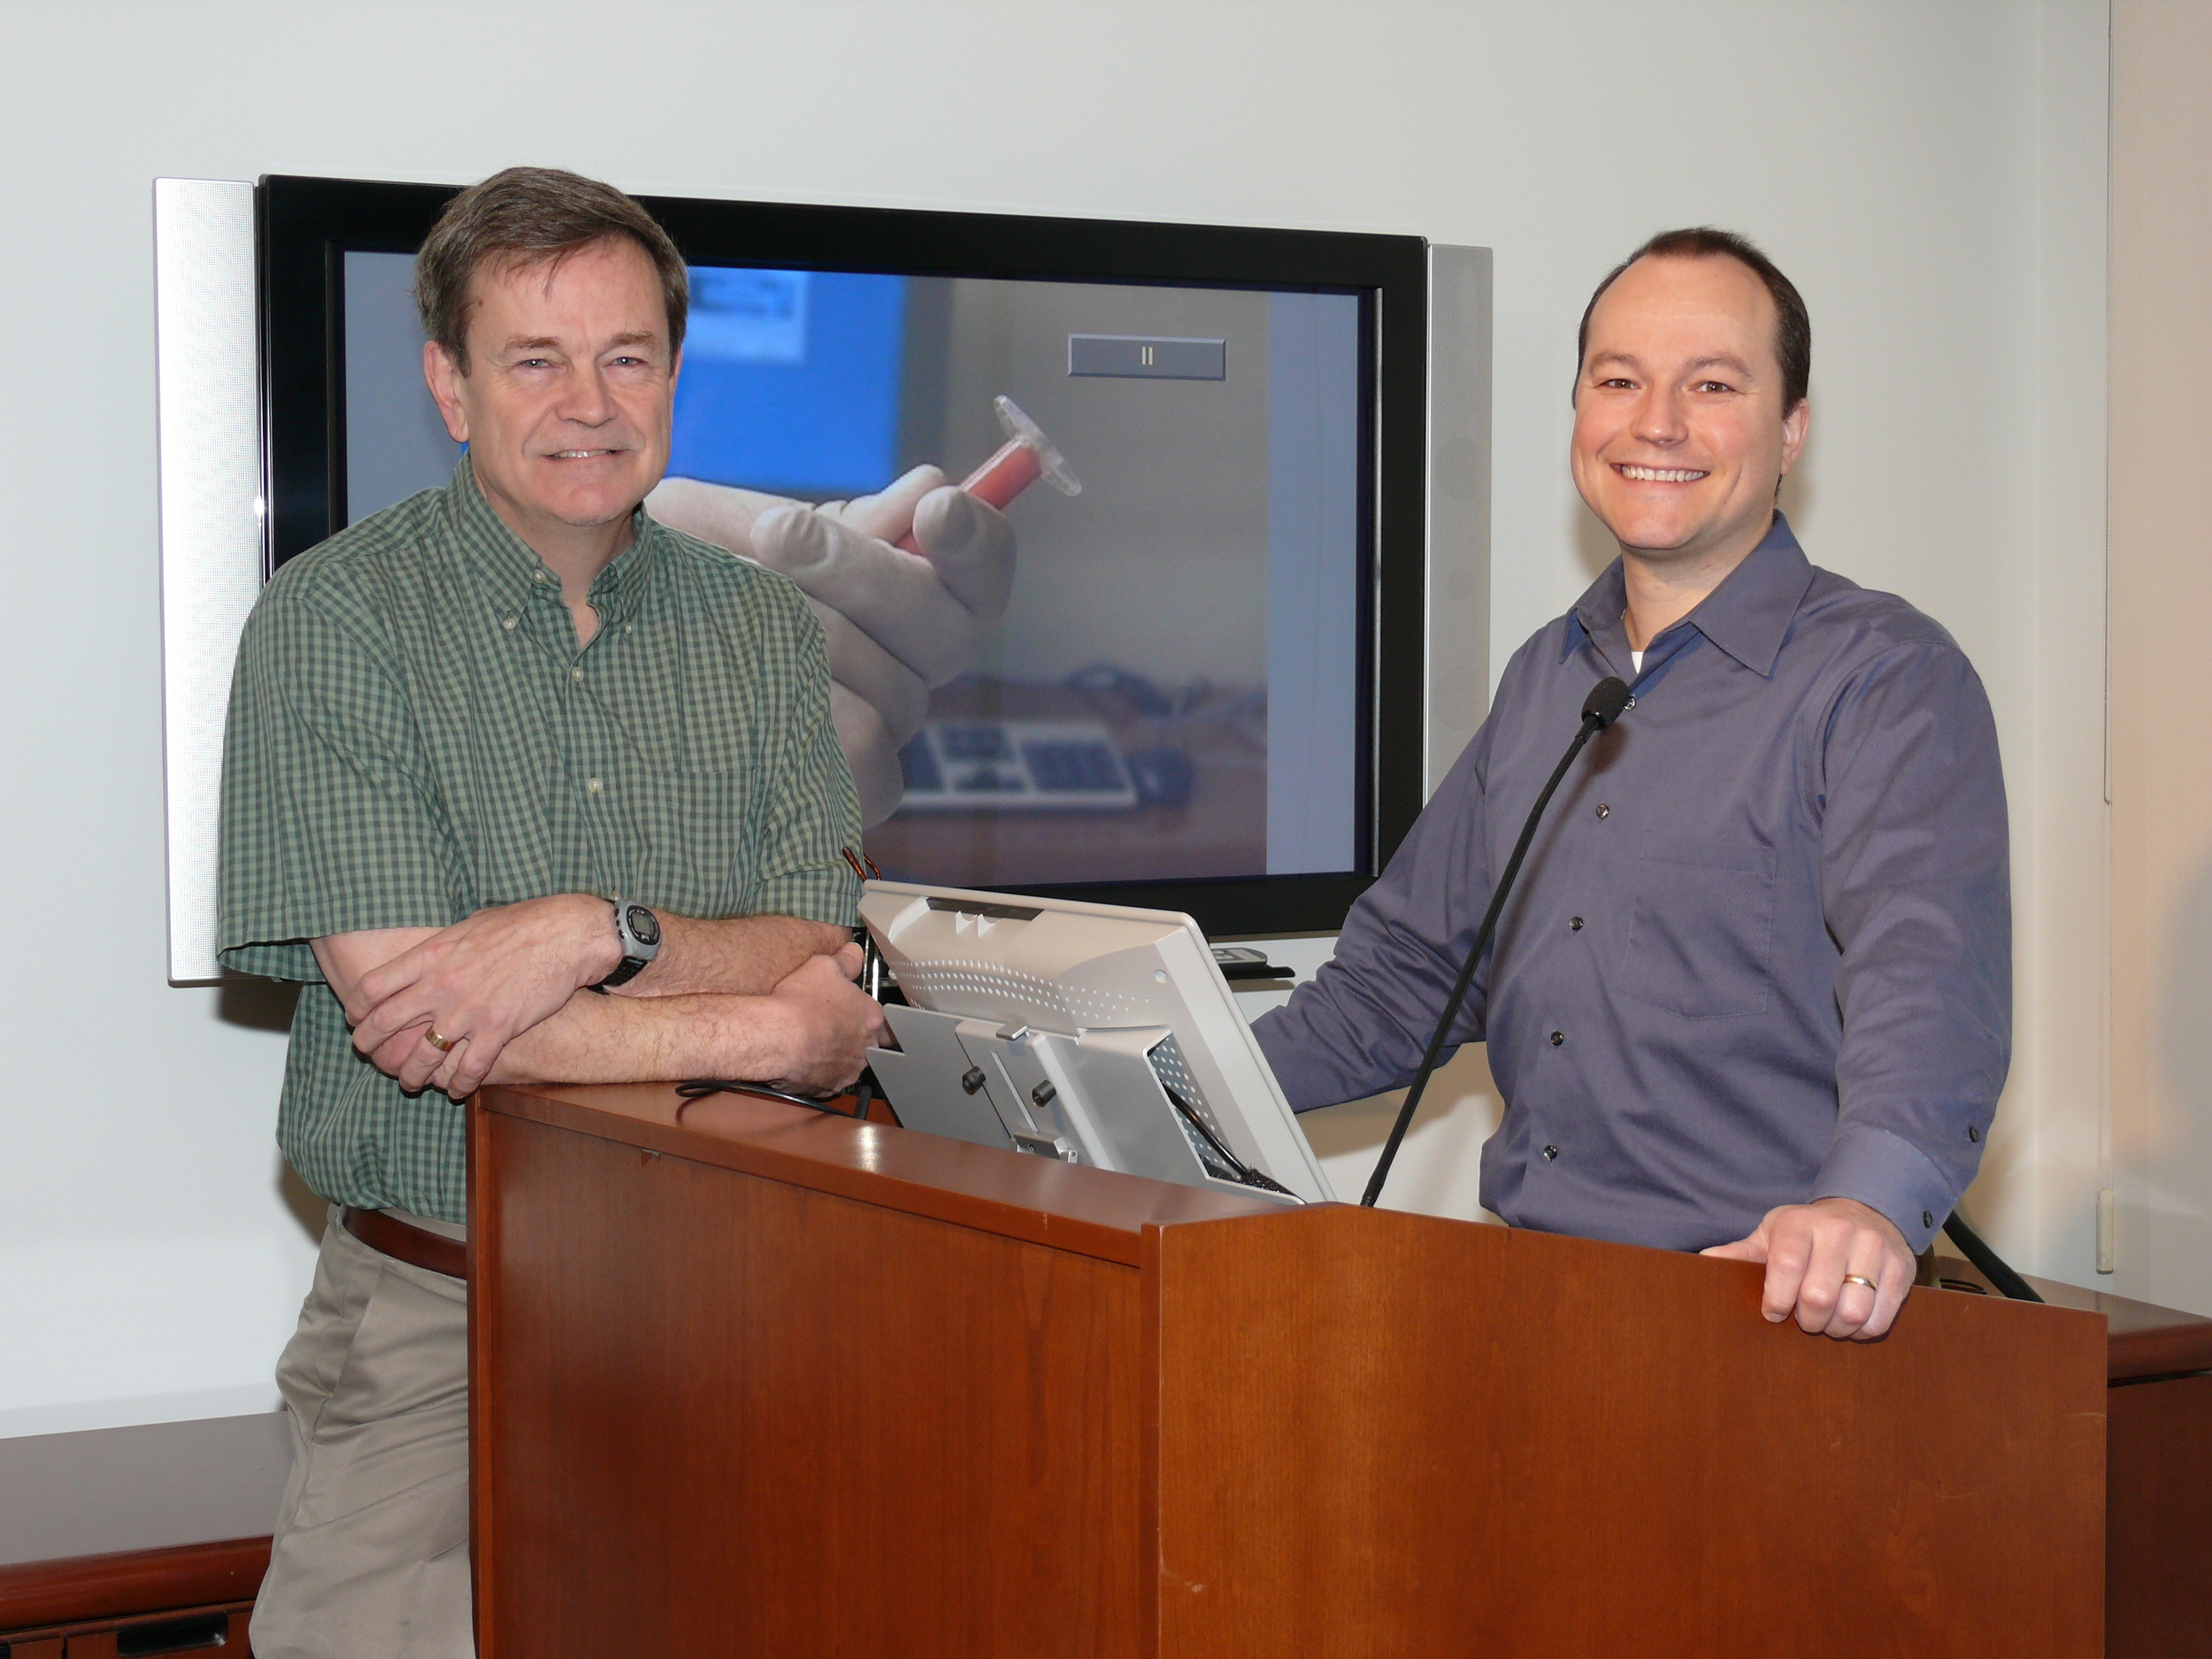 Drs. Jim Kobler and James Heaton prepare to give a lecture in the Voice Center Conference Room.